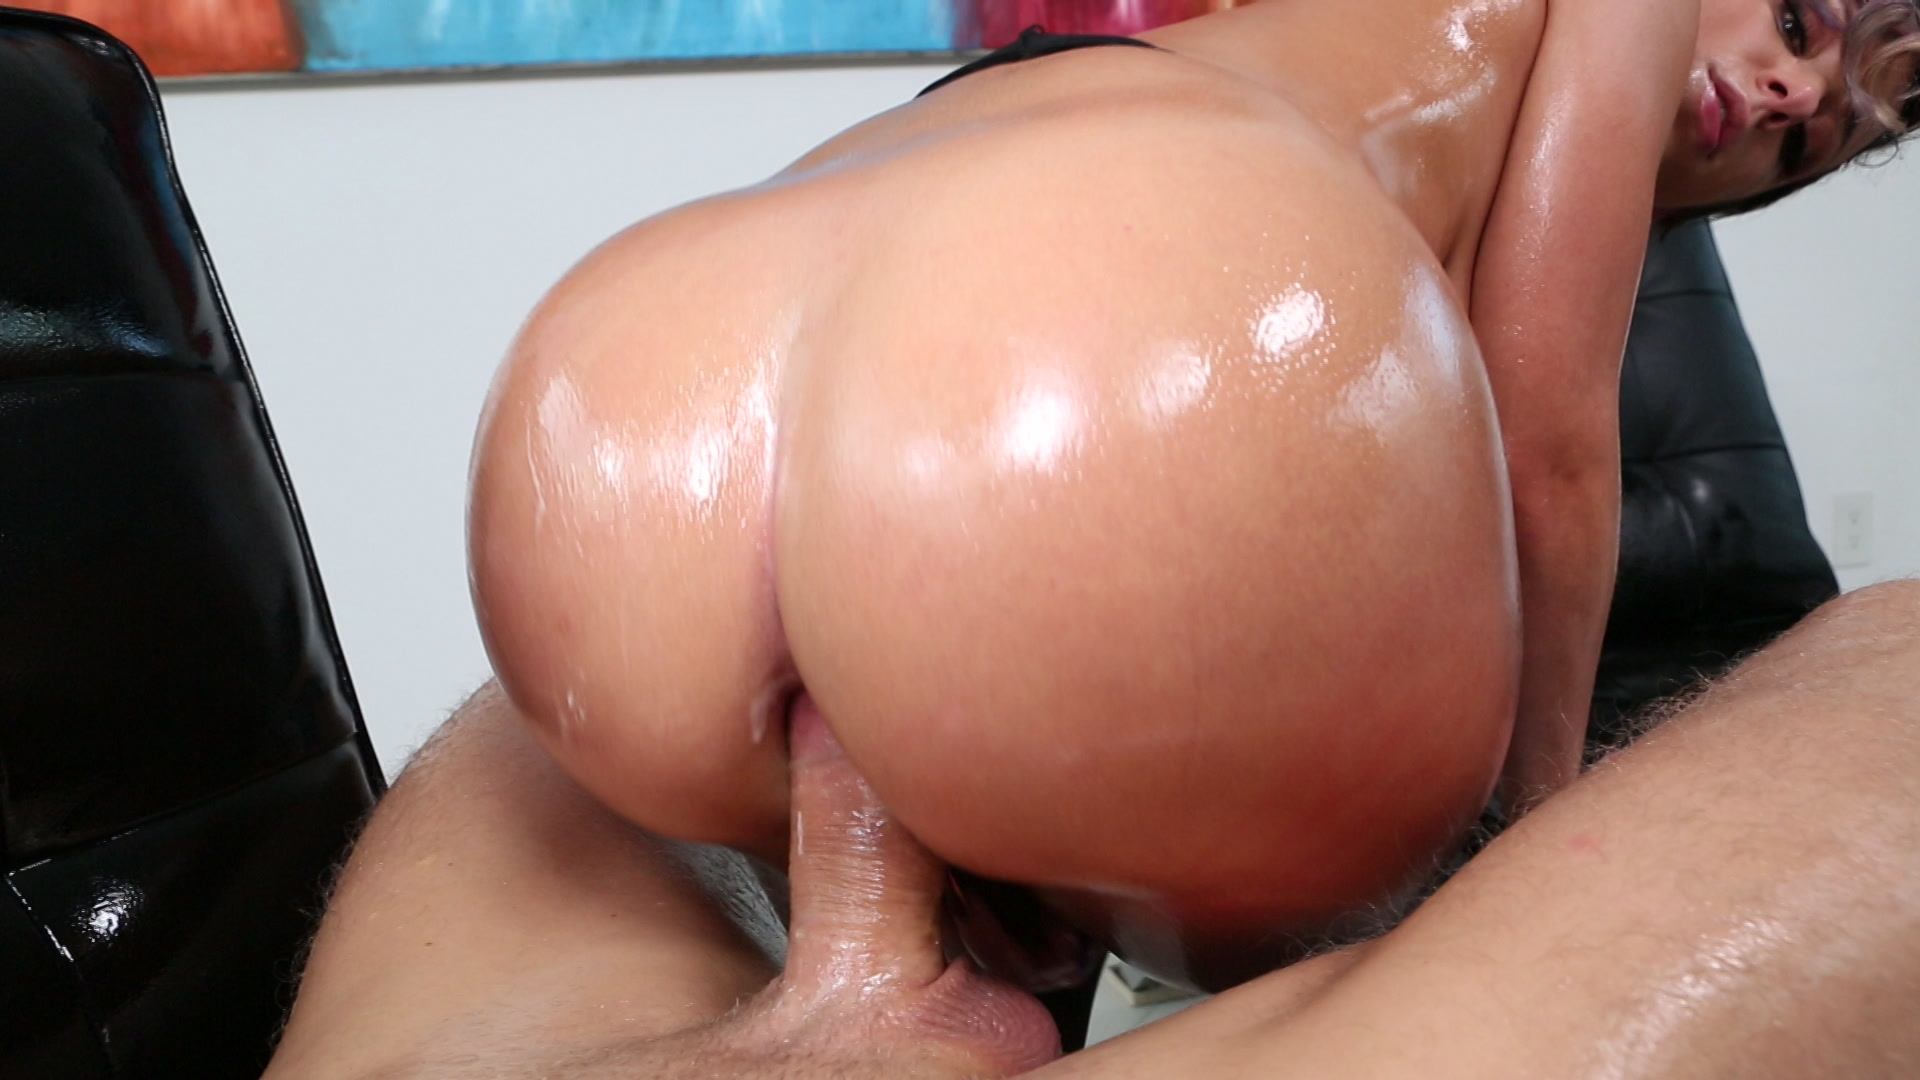 Wet ass anal video, licking chubby ass